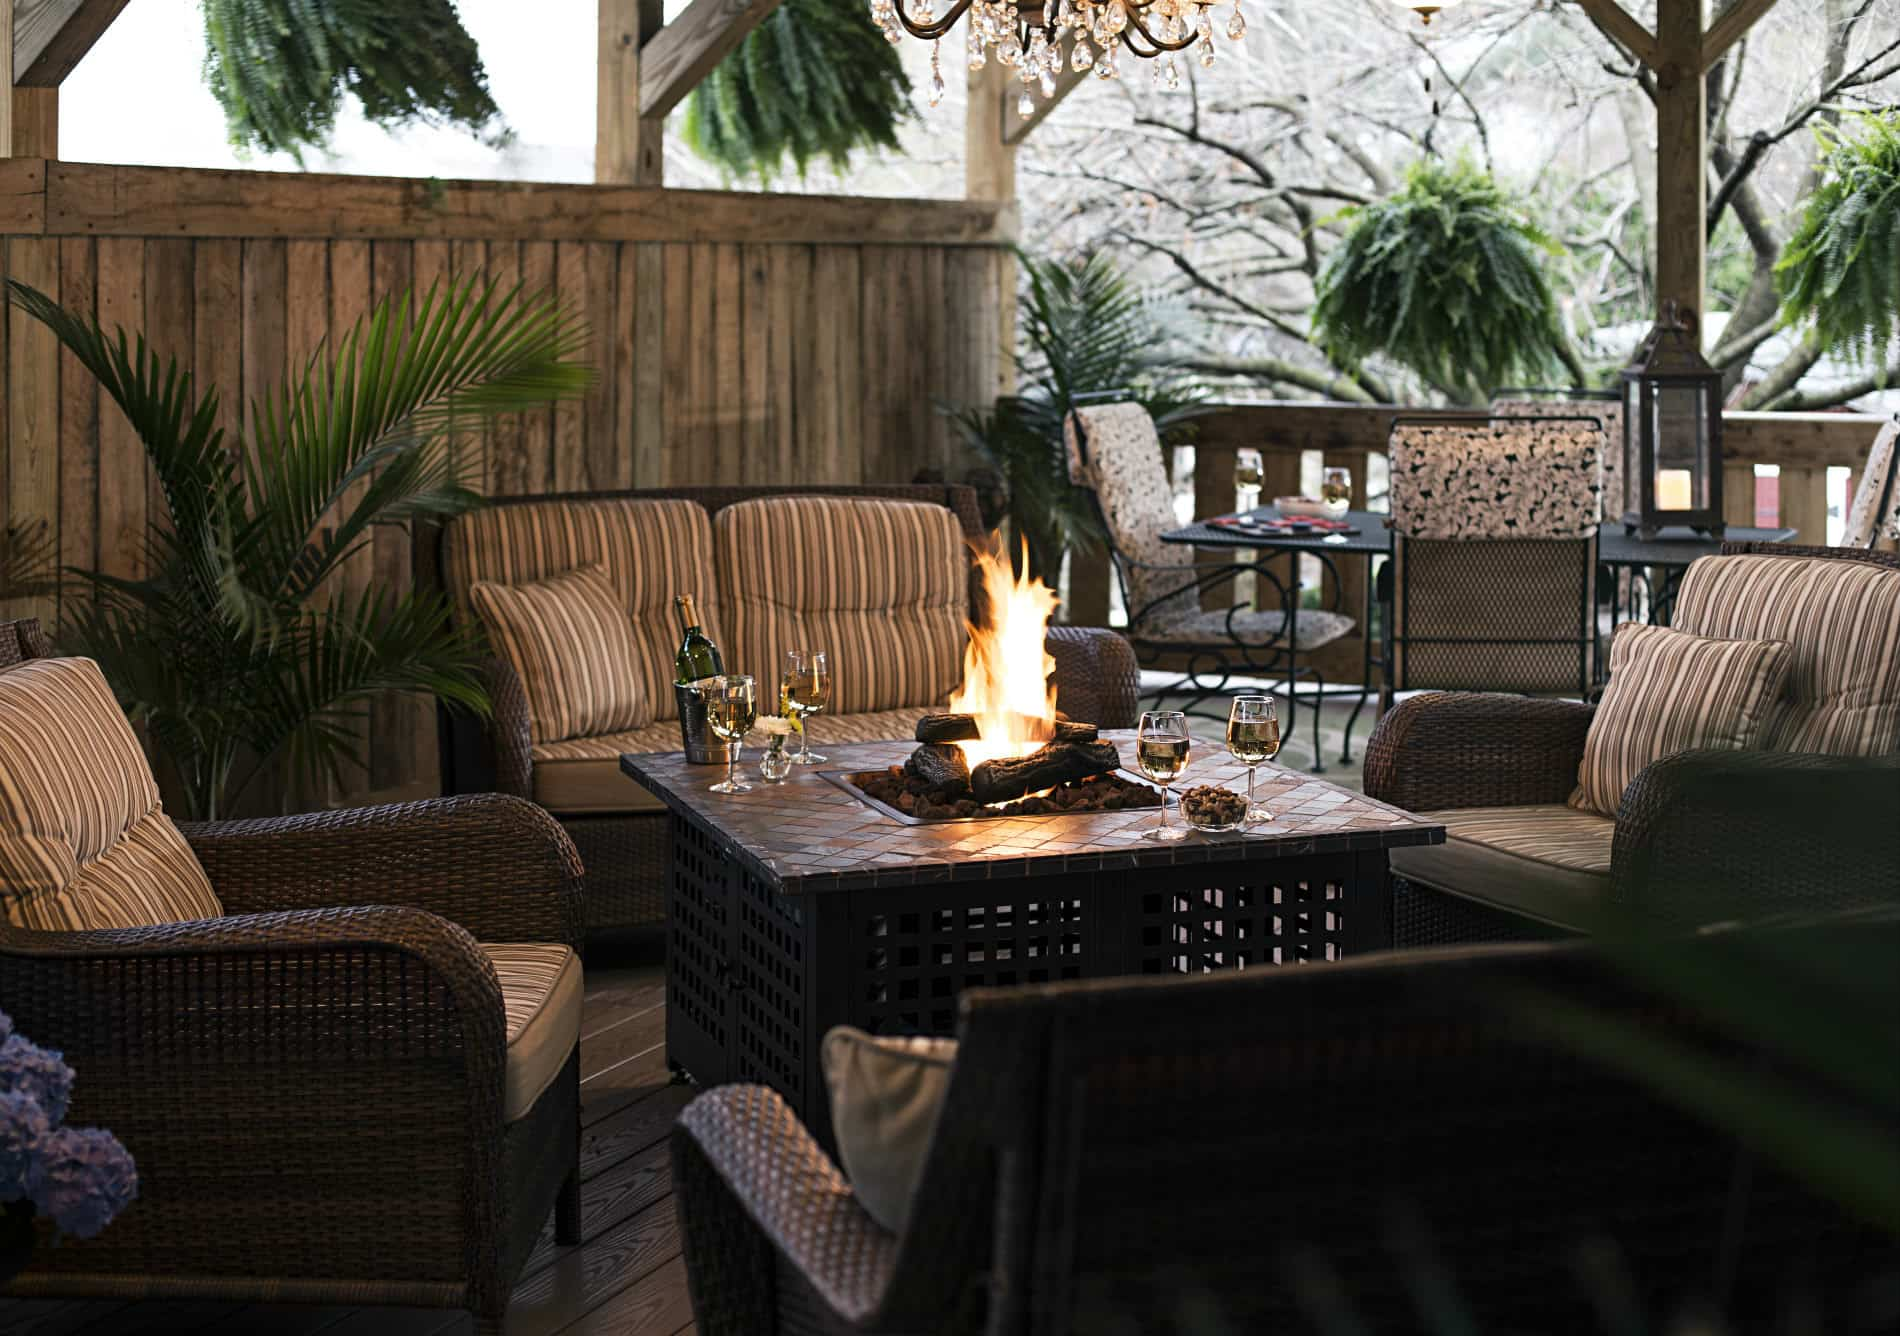 outdoor seating area with brown wicker chairs, fire pit table, wooden pergola and green hanging baskets